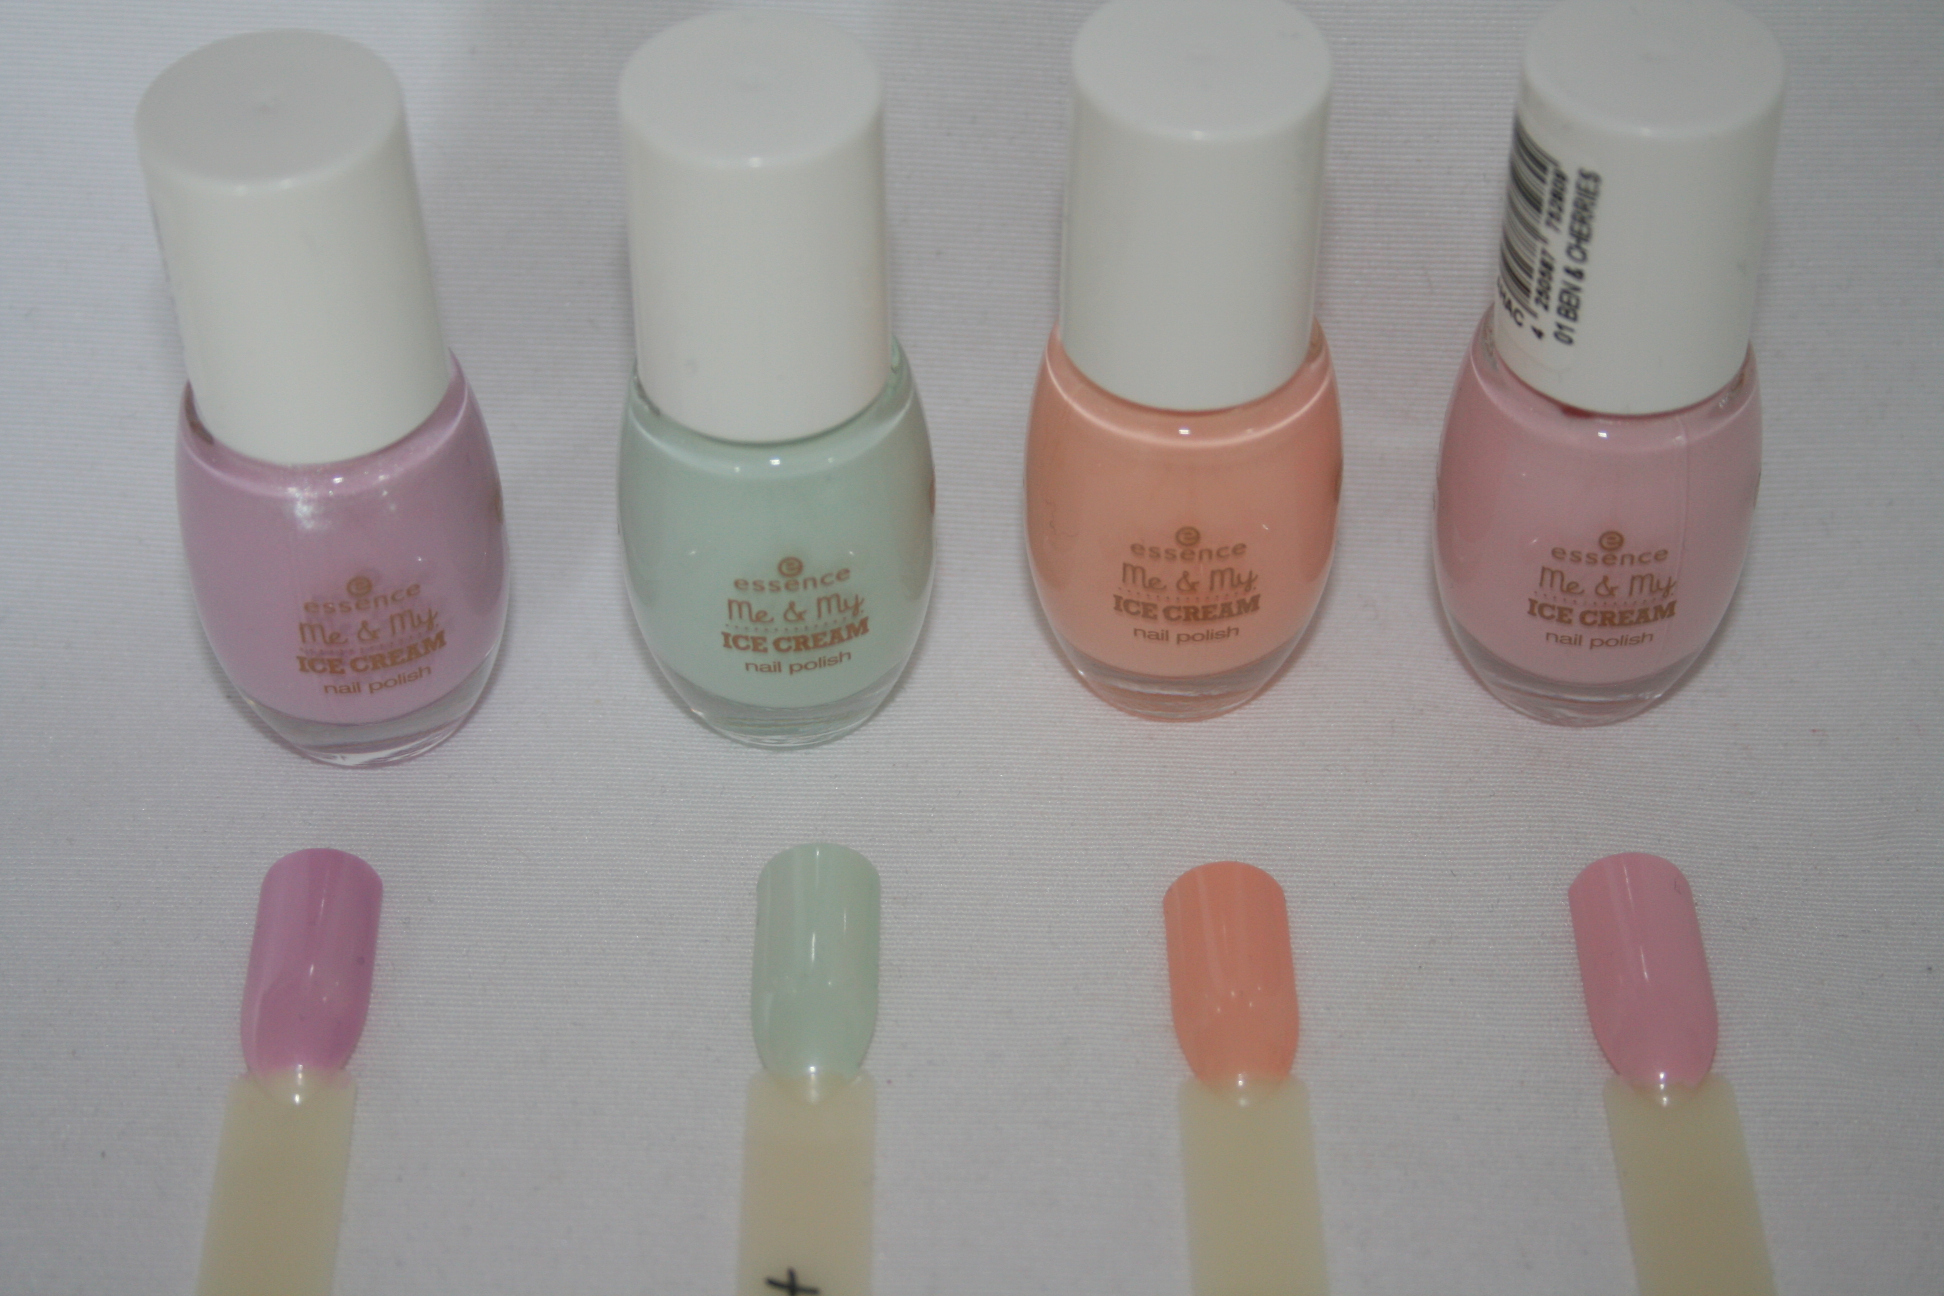 Essence me and my icecram nagellacke swatches